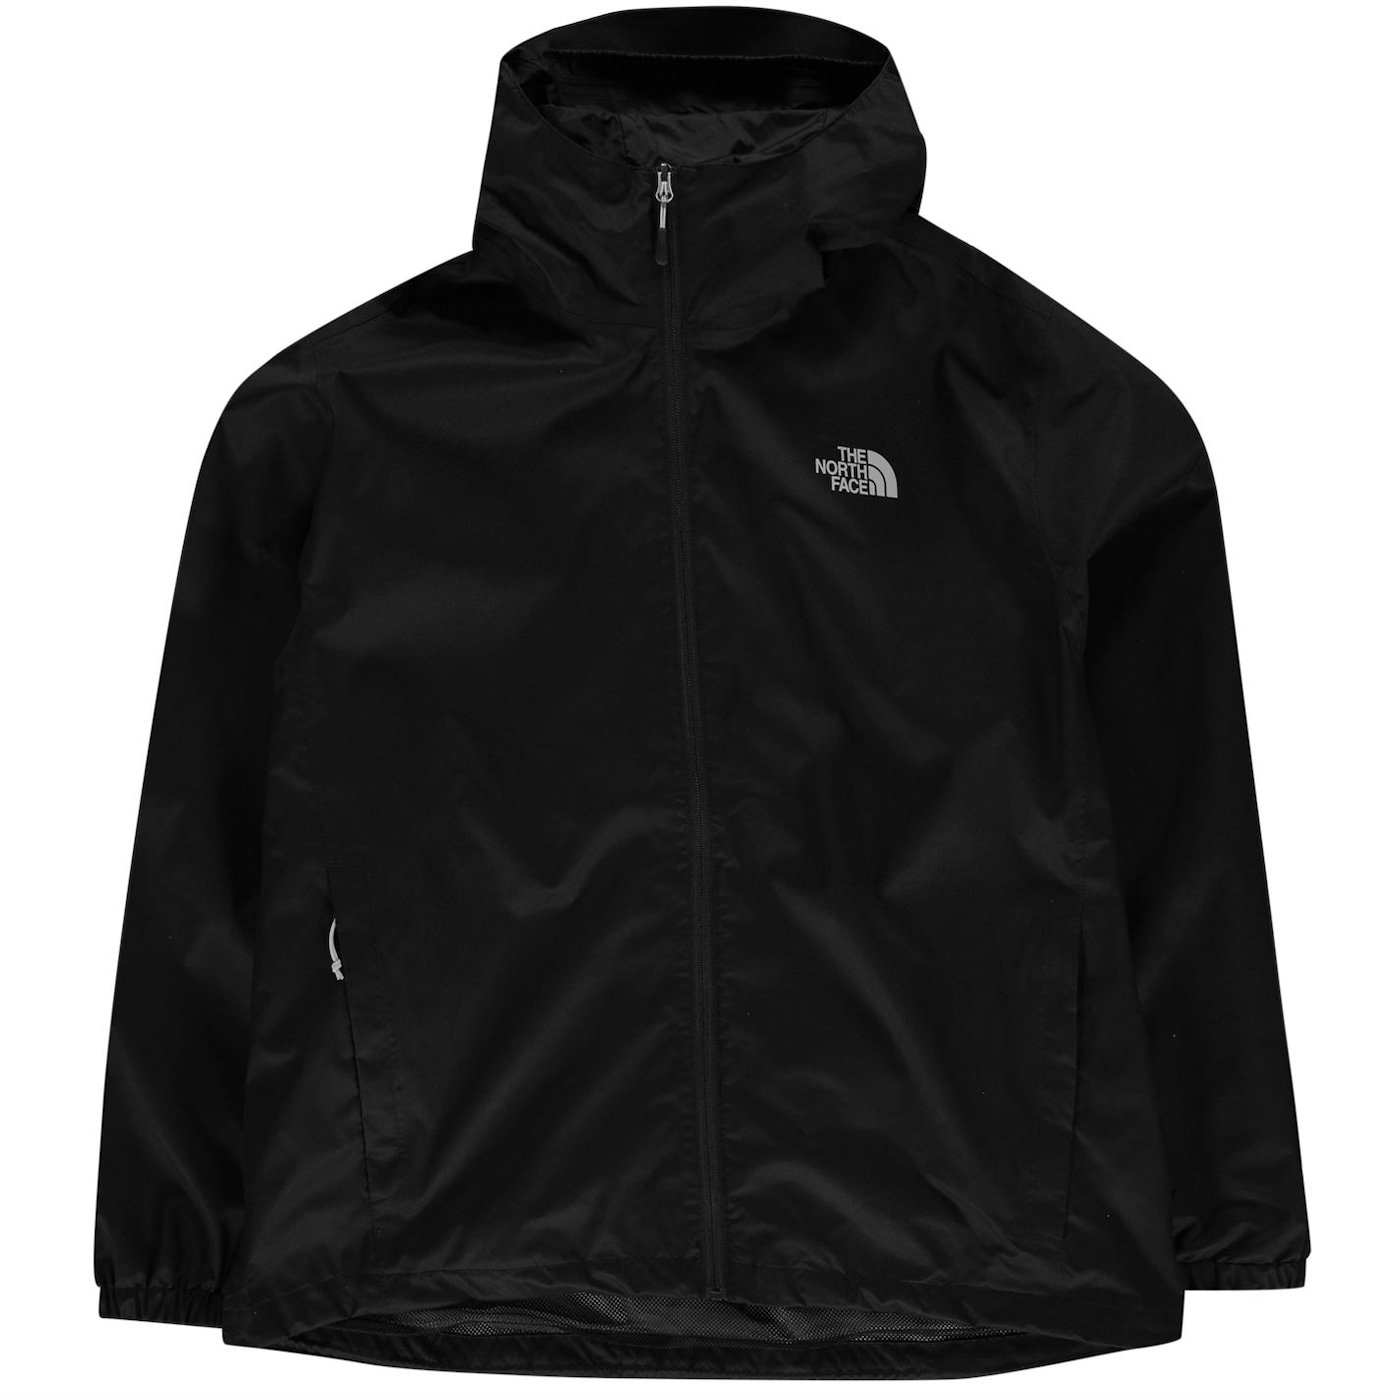 The North Face Quest Jacket Mens